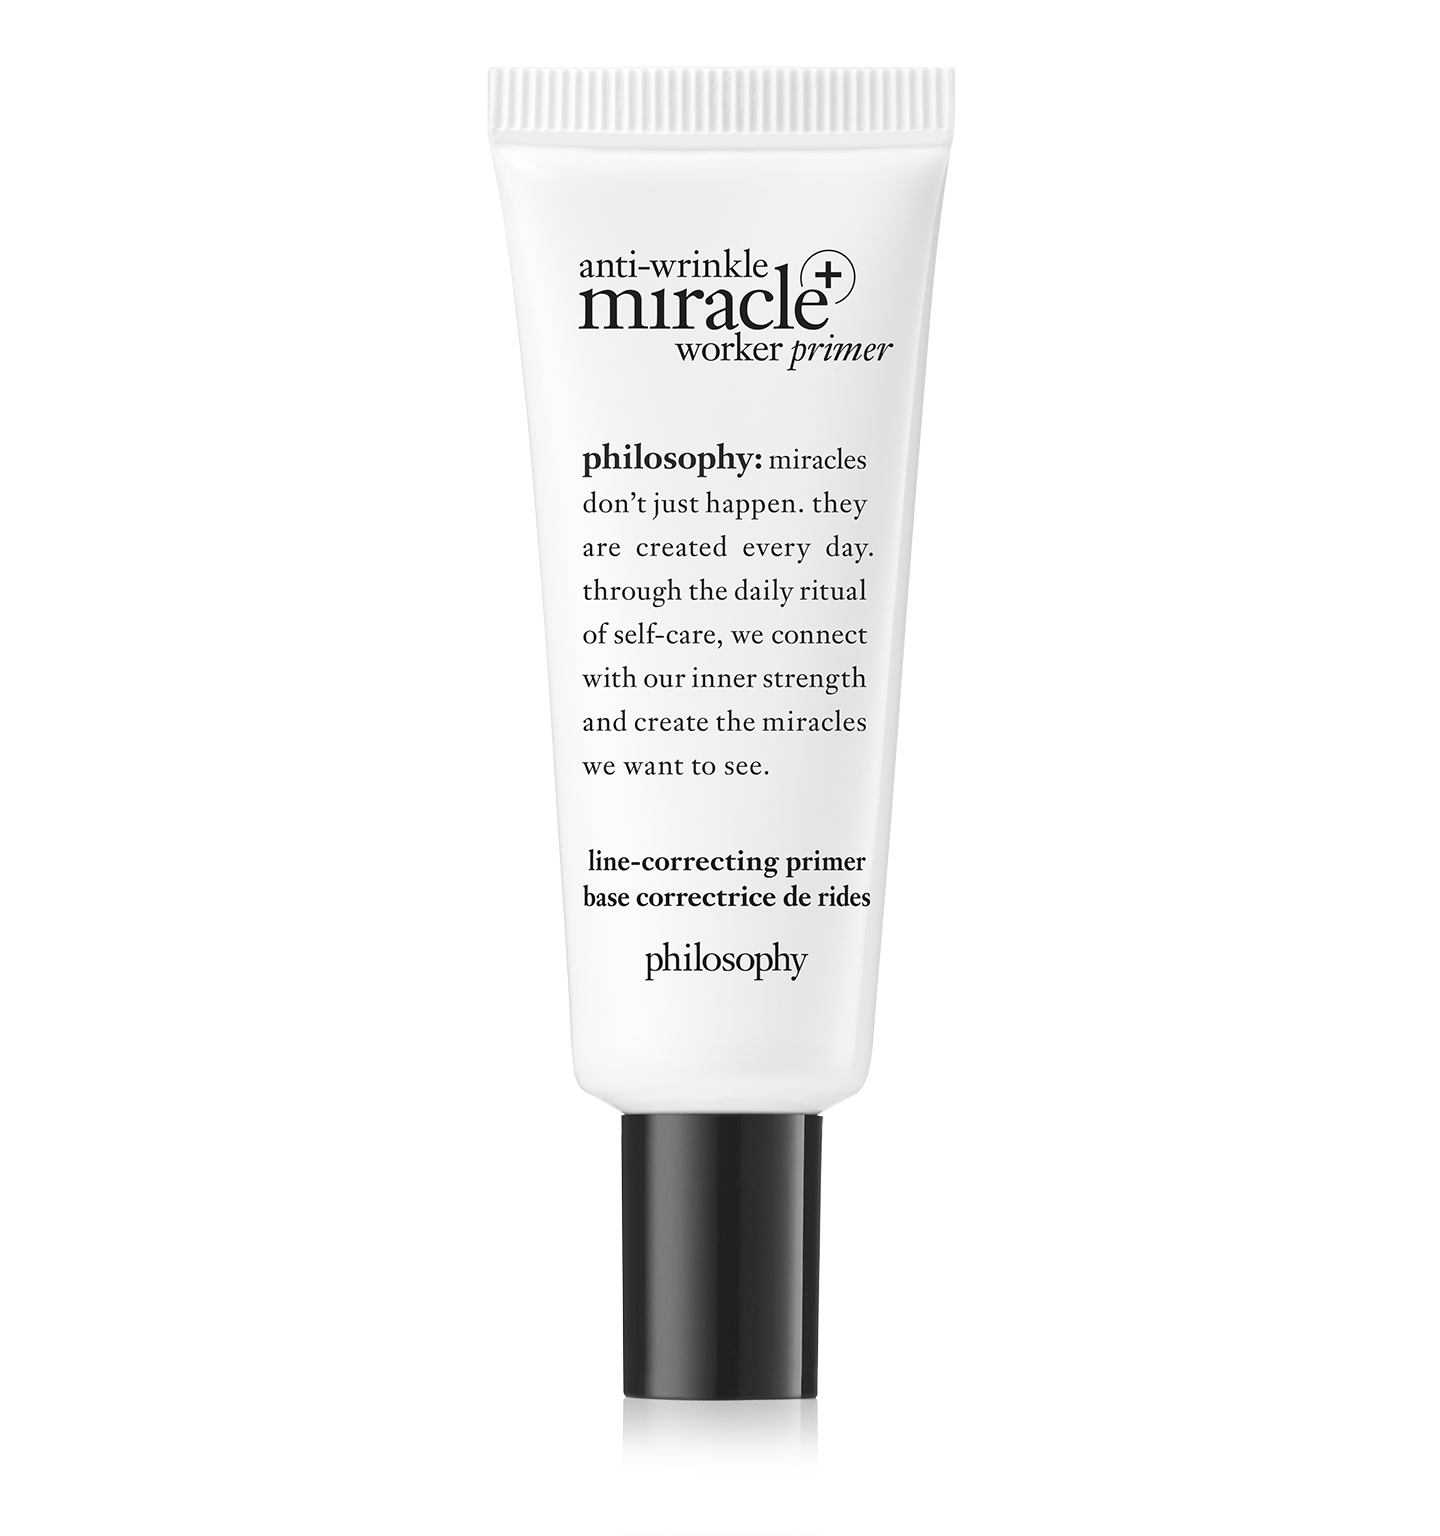 philosophy, anti-wrinkle miracle worker primer+